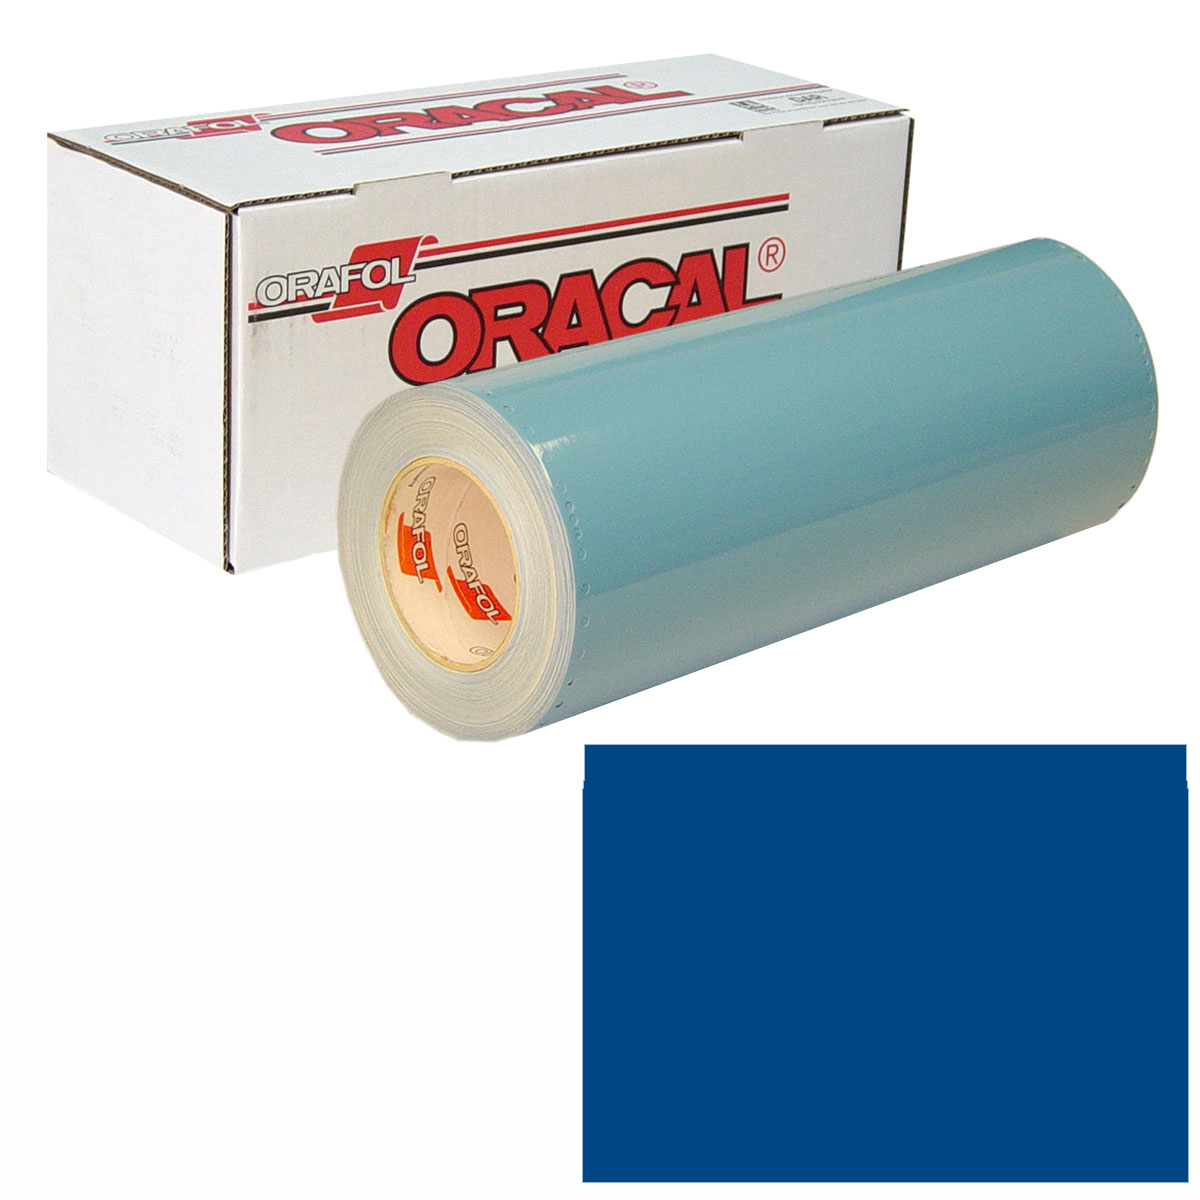 ORACAL 751 30In X 50Yd 067 Blue